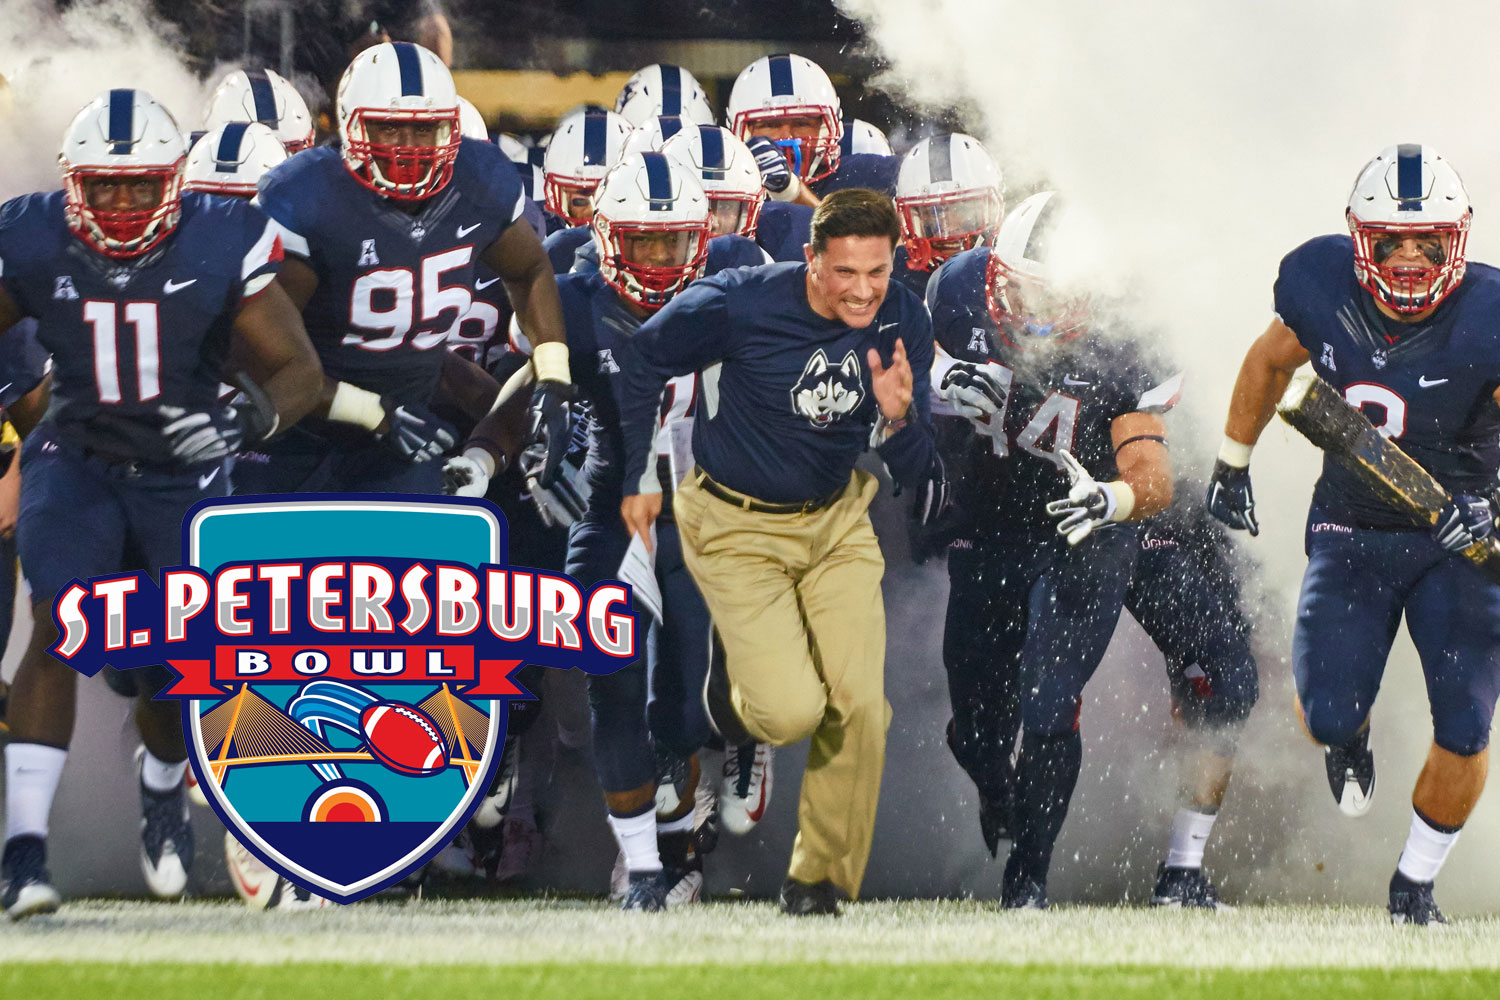 The Huskies will play in the St. Petersburg Bowl at Tropicana Field in St. Petersburg, Fla. (Peter Morenus/UConn Photo)